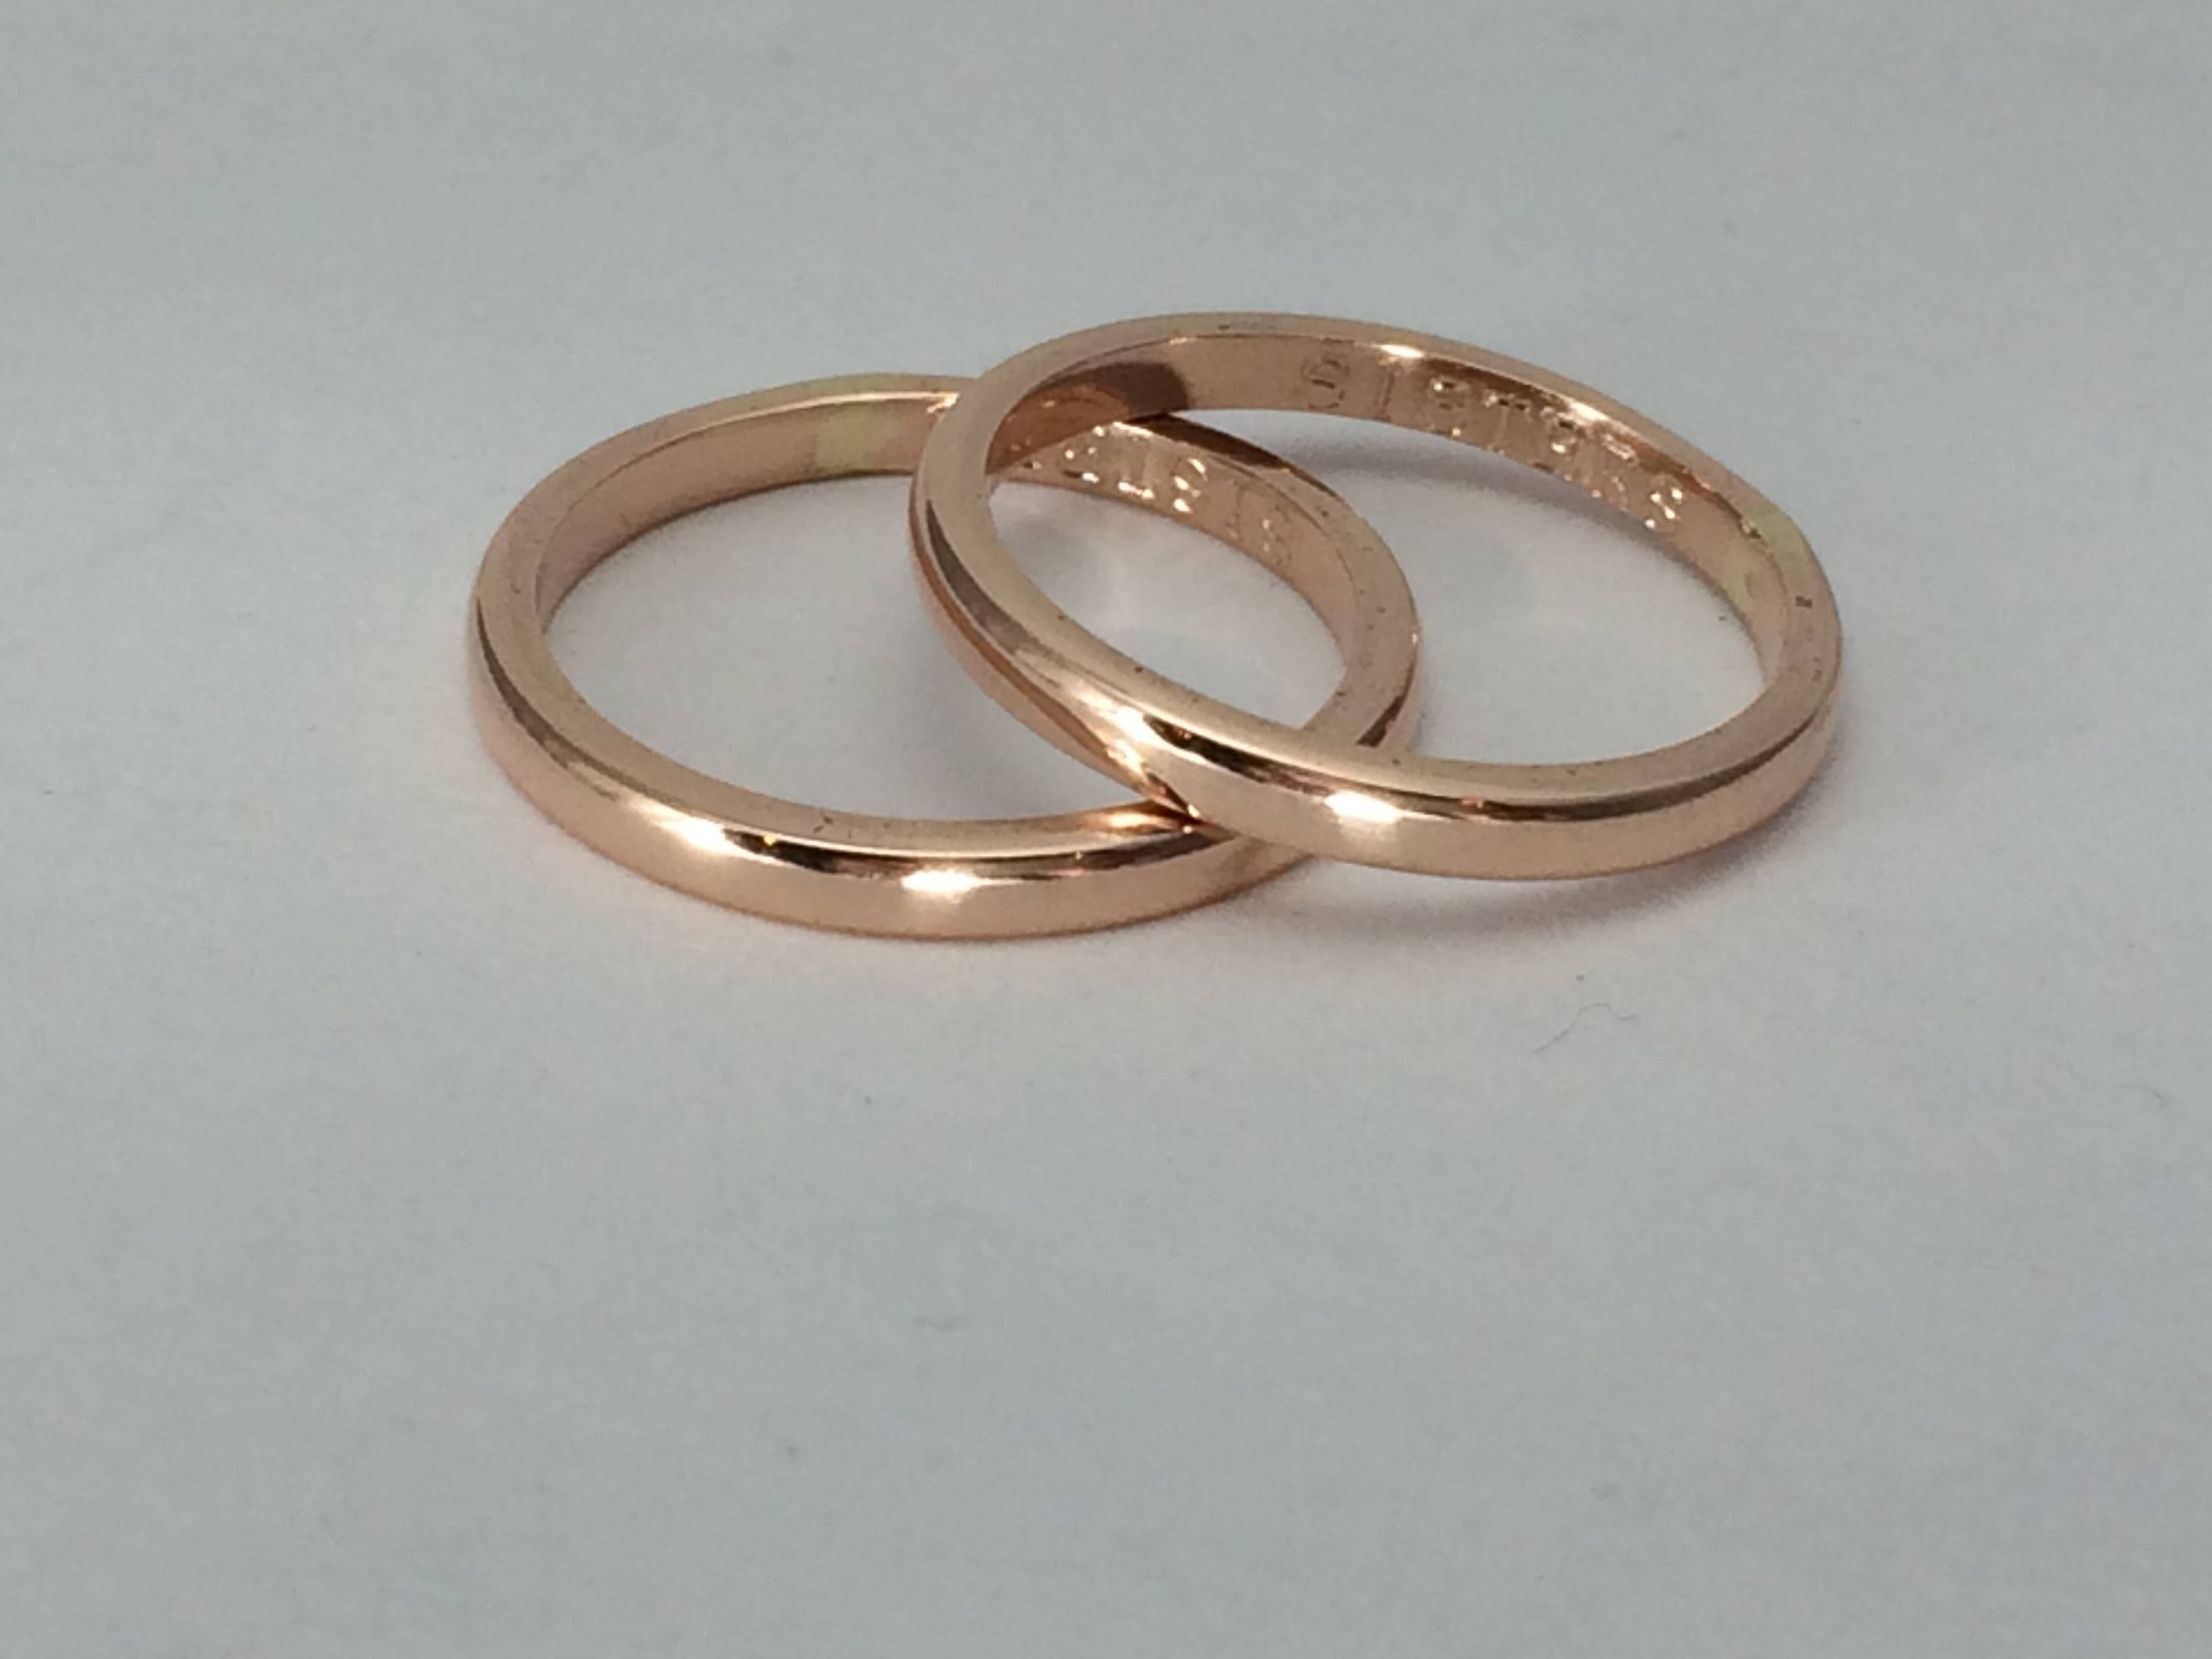 One Ring, 10Kt Gold, 12G Rose Or Yellow Gold Ring, 2Mm Wide,  (View 9 of 15)